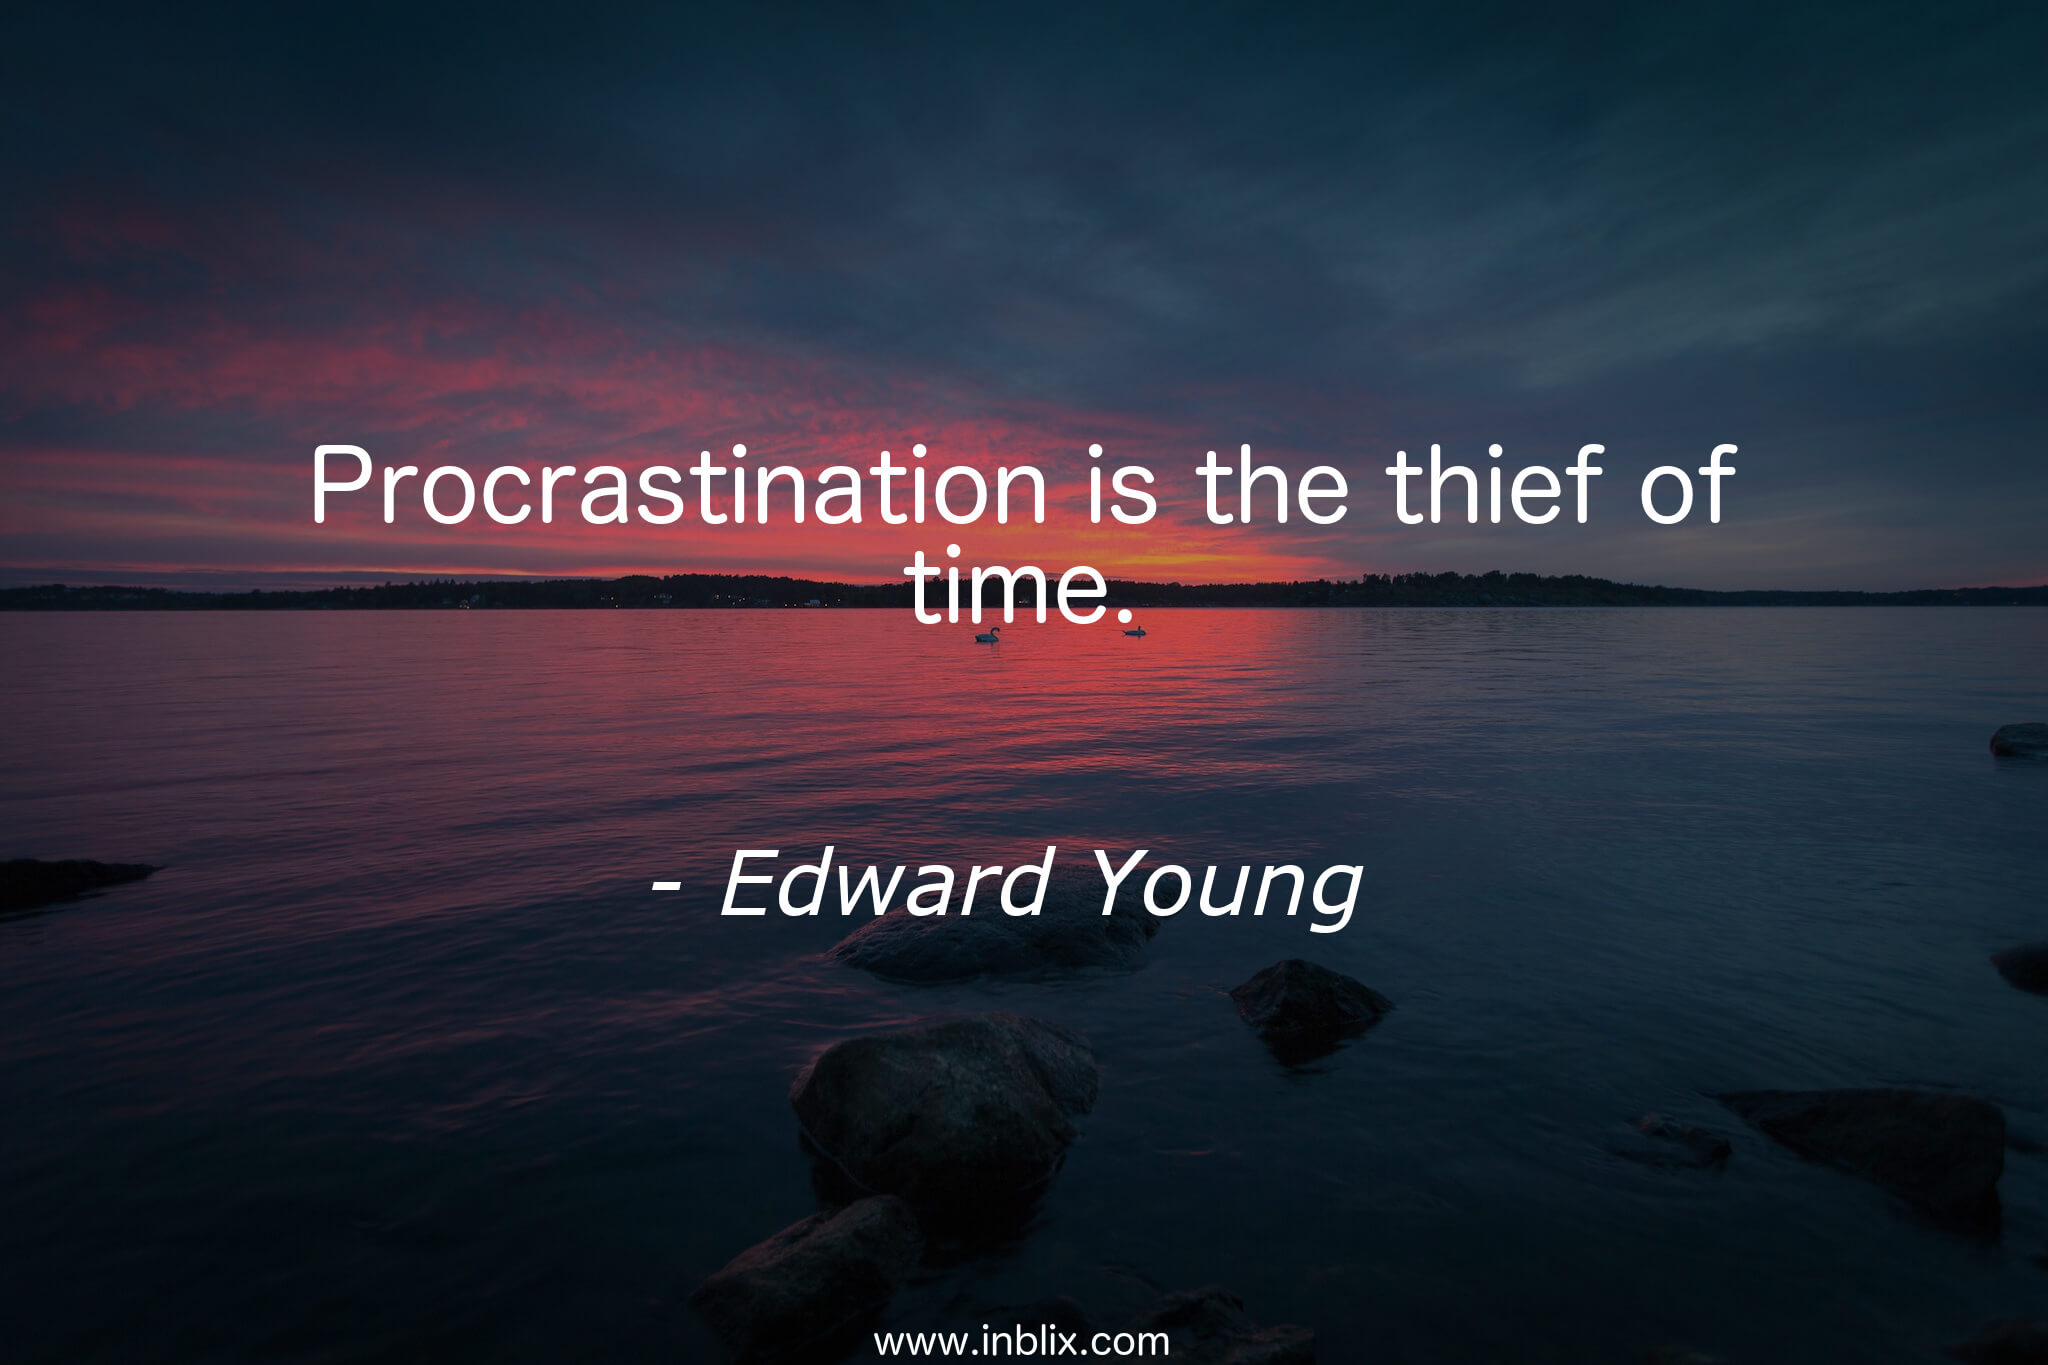 Procrastination is the thief of time.